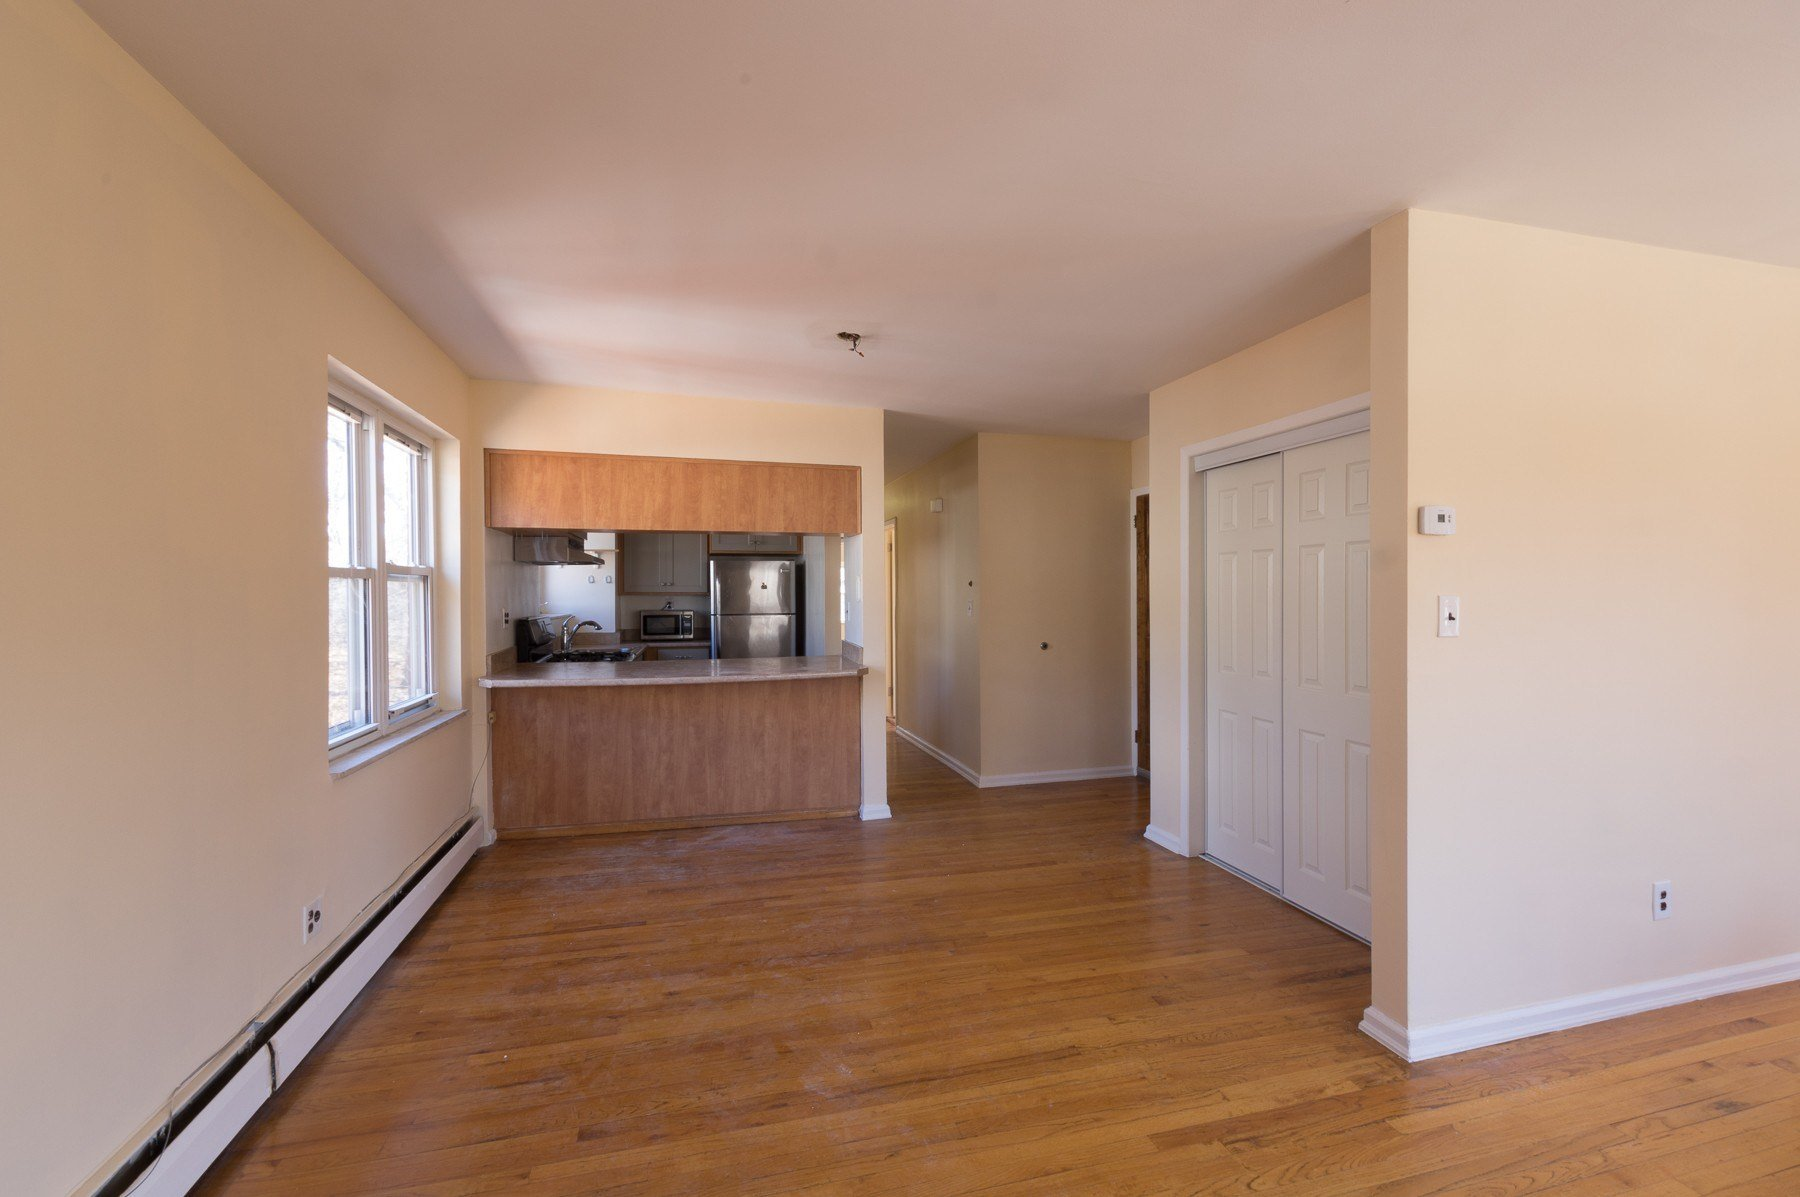 Best 5912 Spencer Ave 3 Bronx Ny 10471 3 Bedroom Apartment For Rent For 2 650 Month Zumper With Pictures